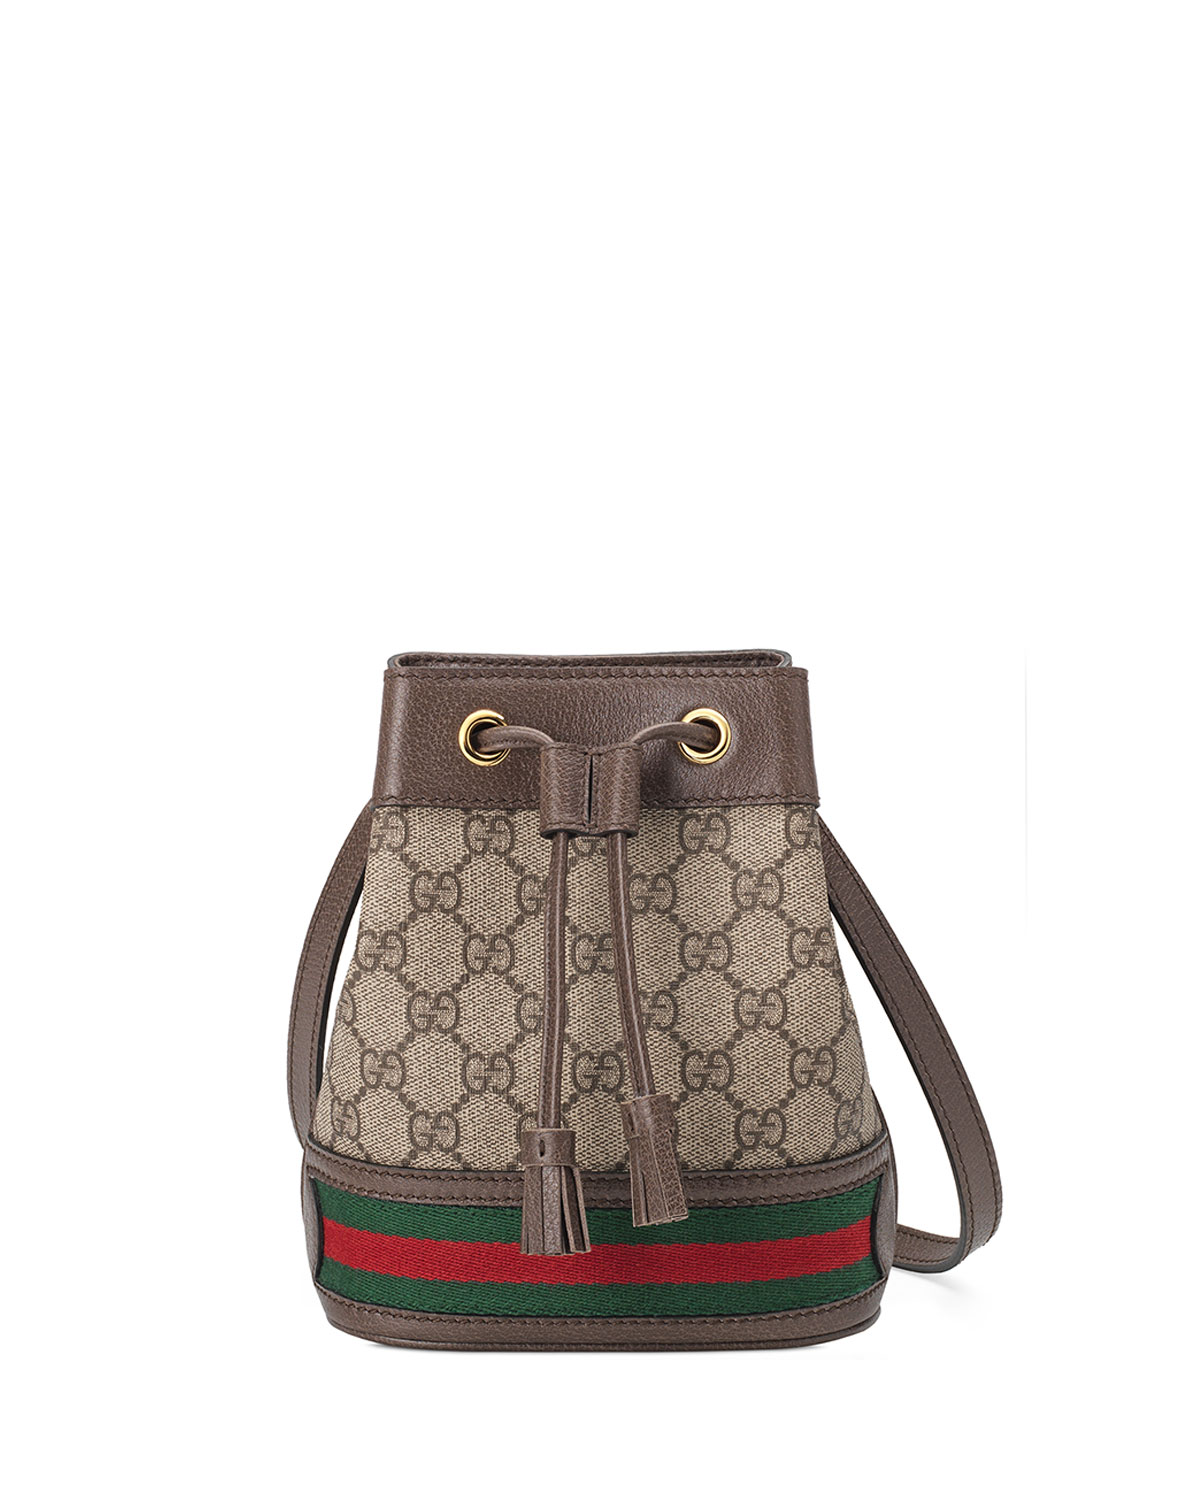 10693d0f7a2a Gucci Ophidia Mini GG Supreme Canvas Bucket Bag | Neiman Marcus